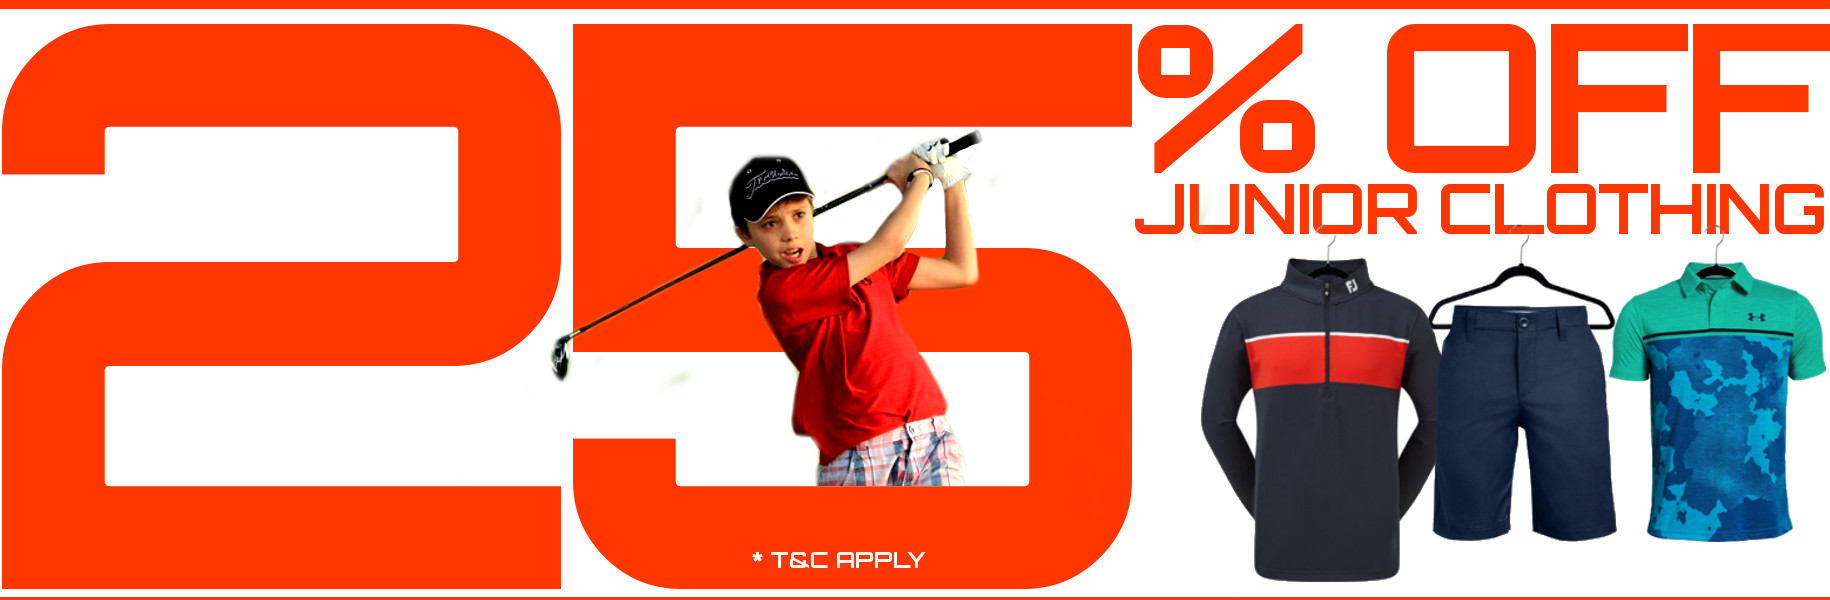 25% OFF all Junior Golf Clothing